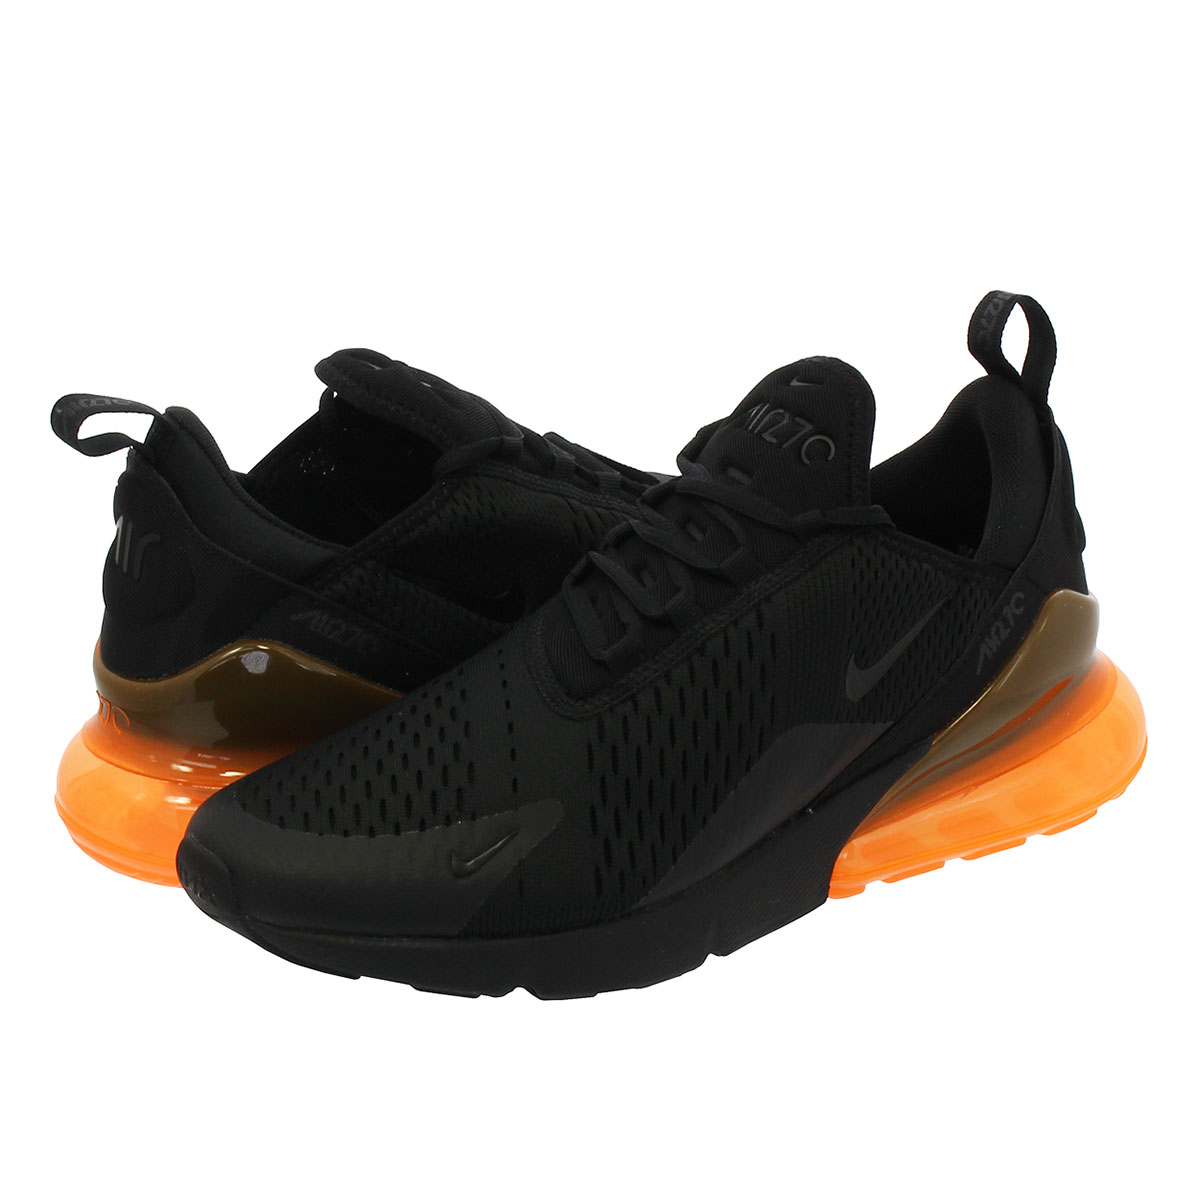 22b6333fae1d NIKE AIR MAX 270 Kie Ney AMAX 270 BLACK TOTAL ORANGE